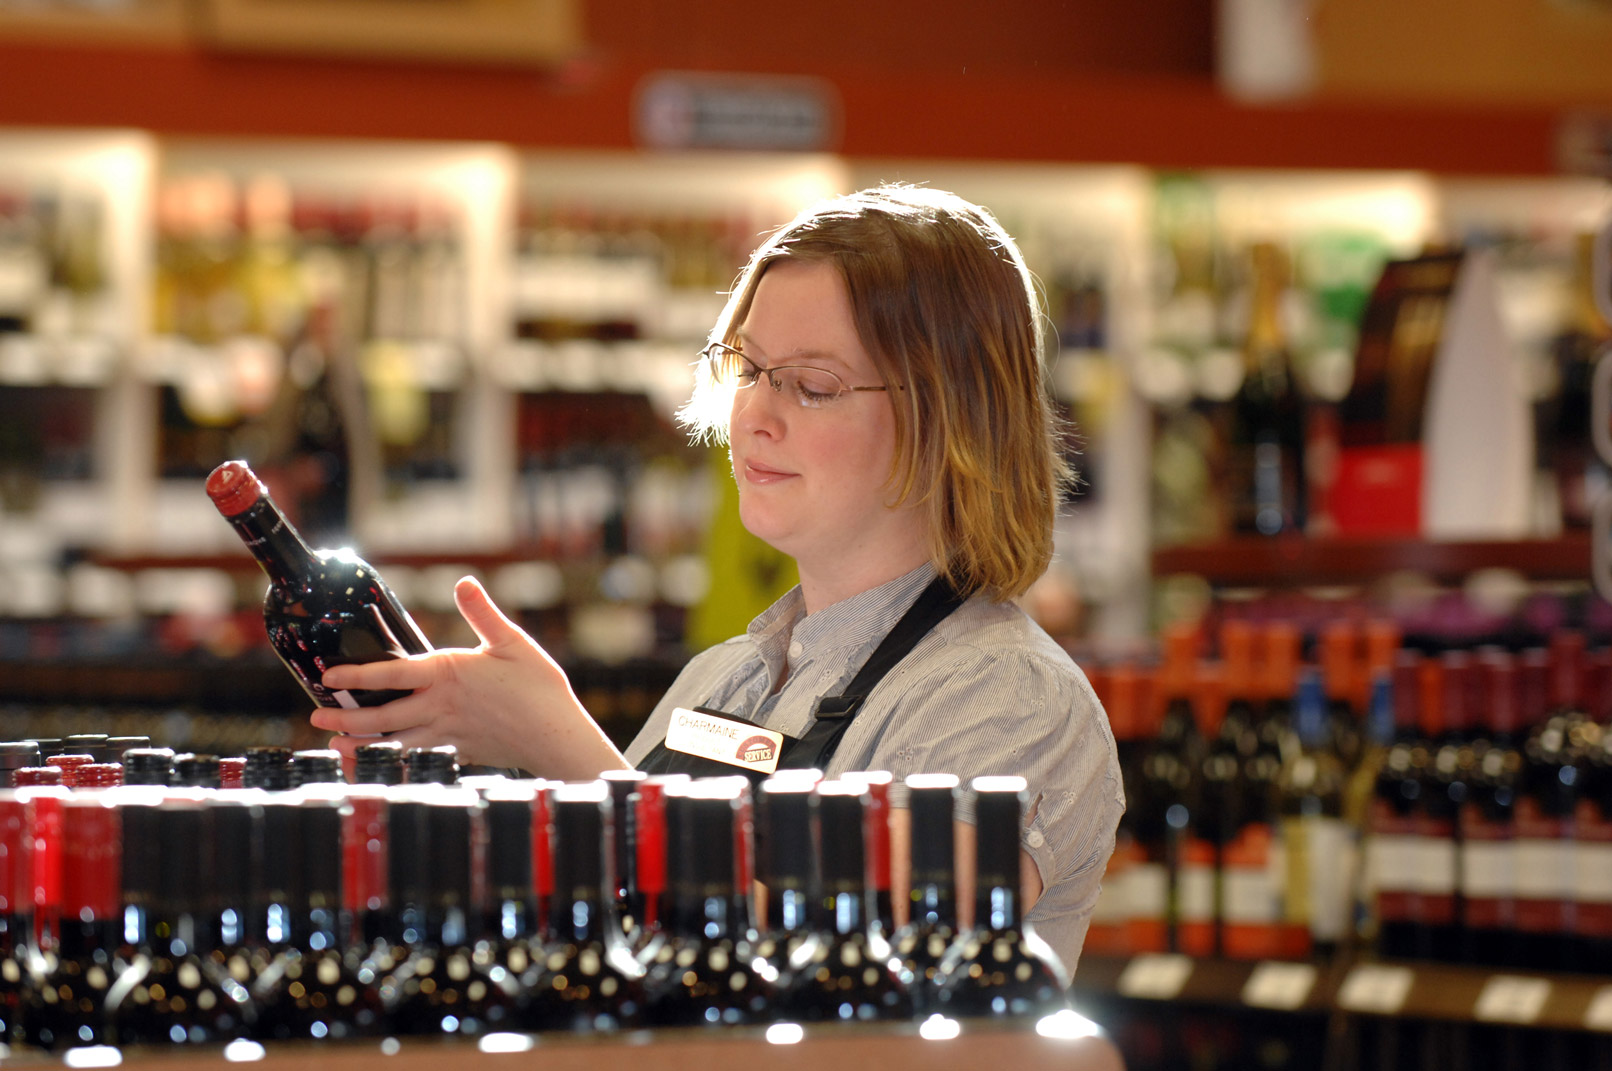 workers and unions liquor store worker jpg